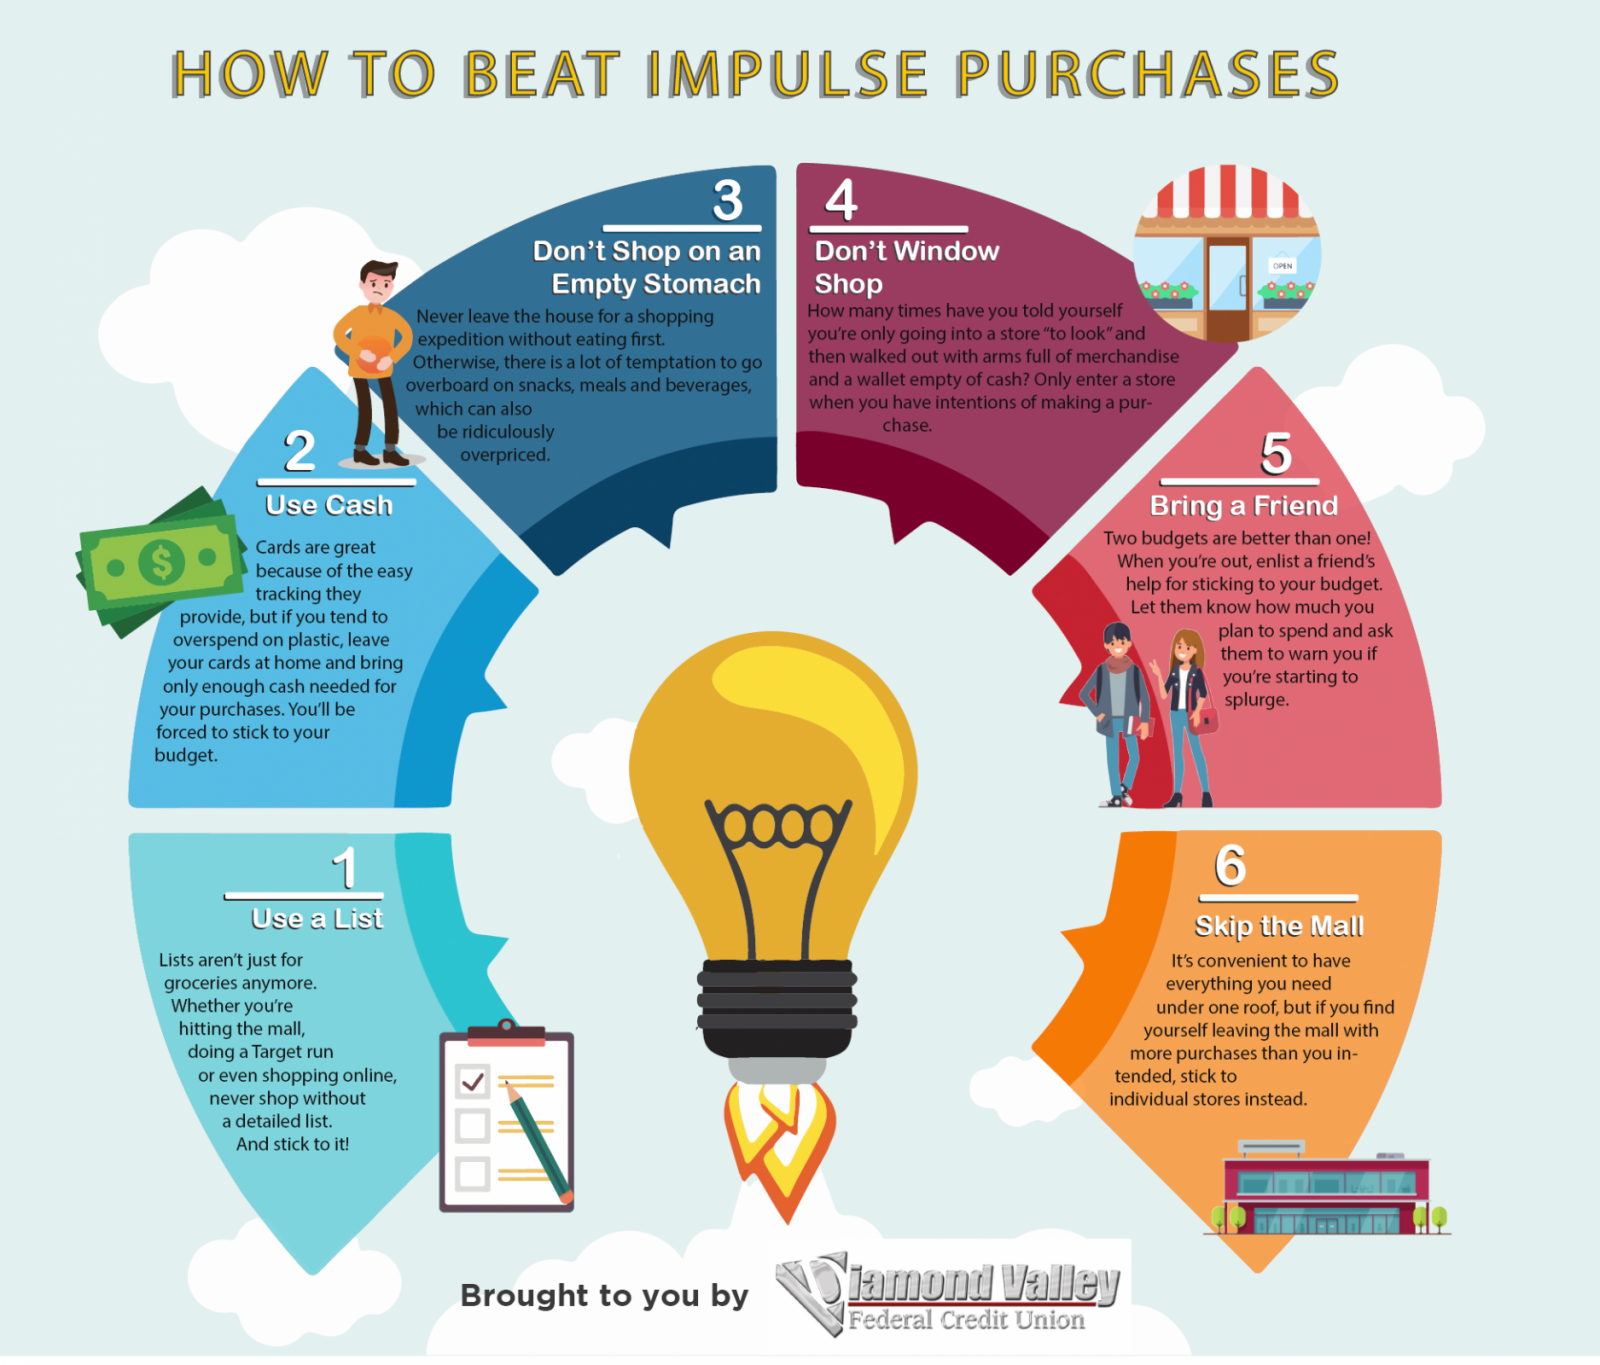 How To Beat Impulse Purchases